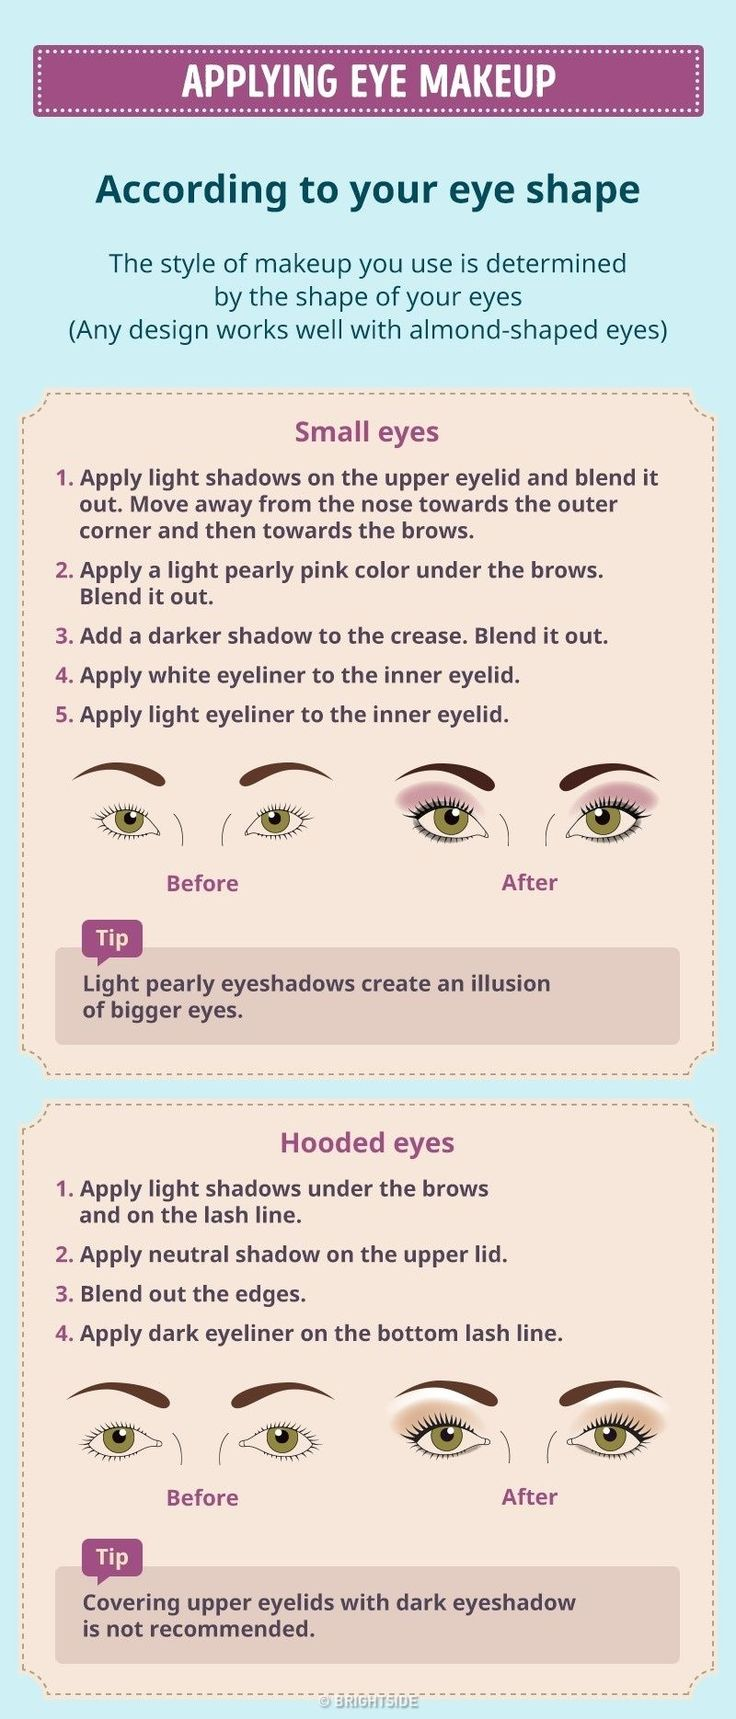 12 Best W3orbcom Images On Pinterest Computers Hair And Makeup 3pc Set Eyeshadow Moko Smokey Eyes Look Eye Tipssmokey Tips For A Catchy Impressive